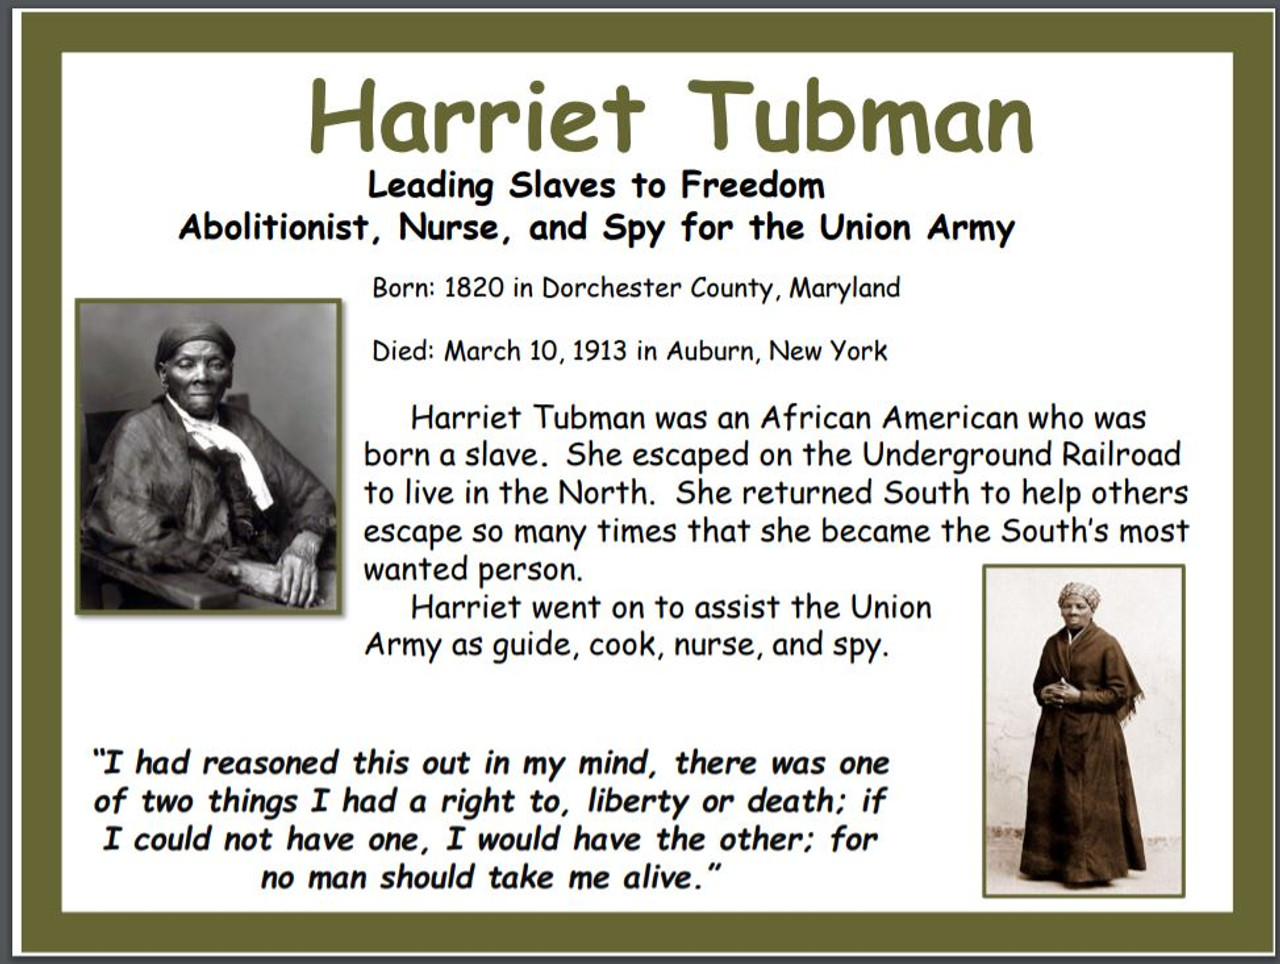 Harriet Tubman Historical Poster - FREE - Amped Up Learning [ 964 x 1280 Pixel ]